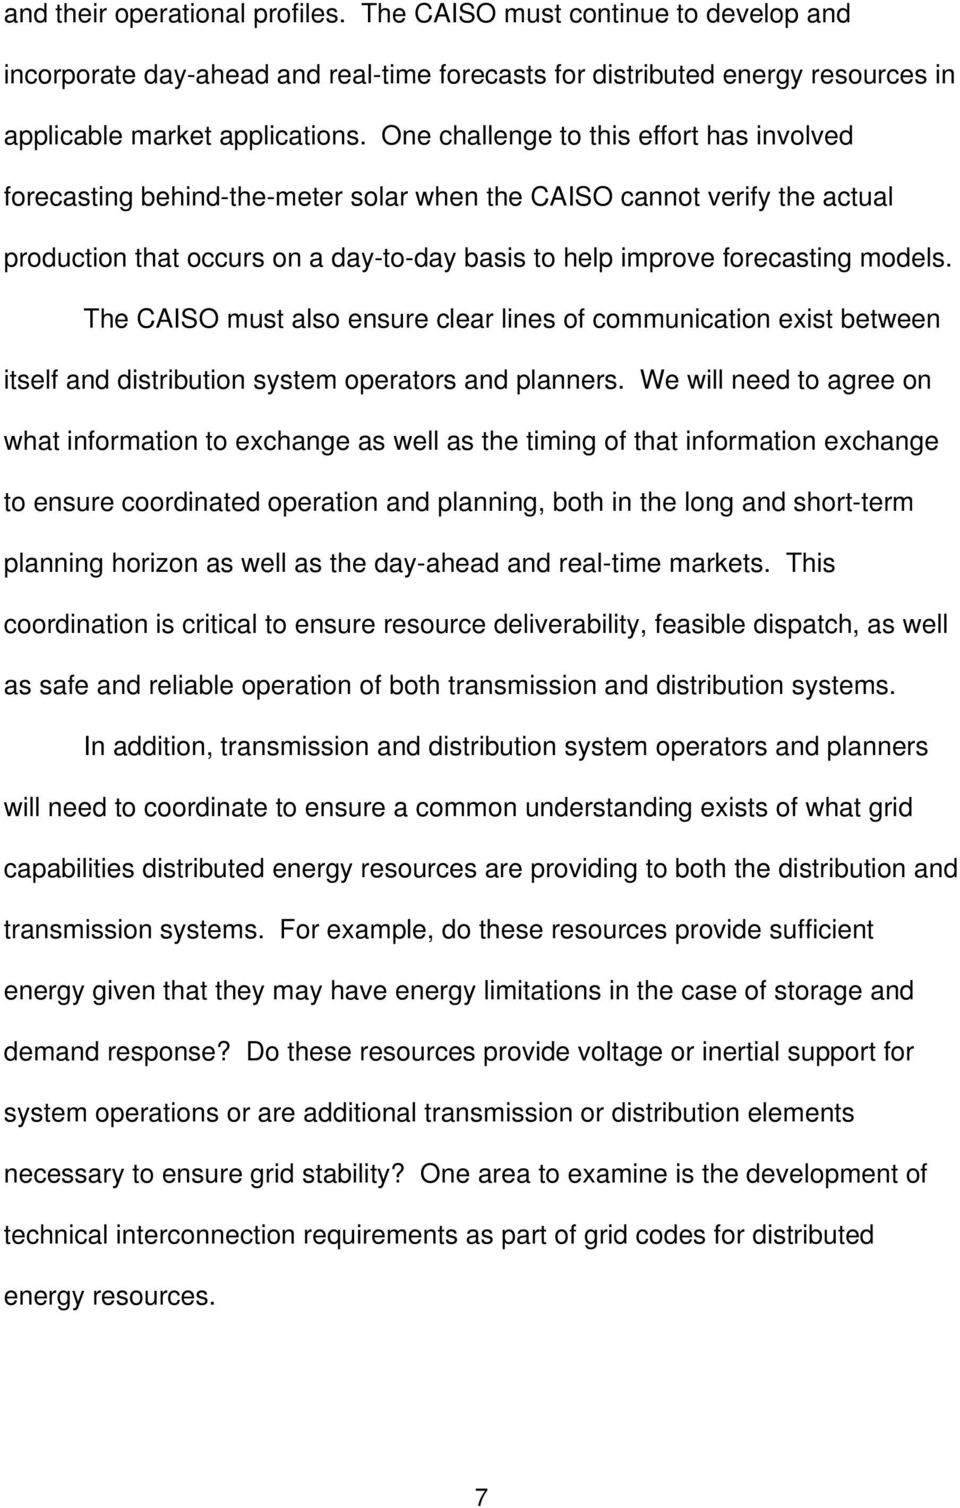 The CAISO must also ensure clear lines of communication exist between itself and distribution system operators and planners.